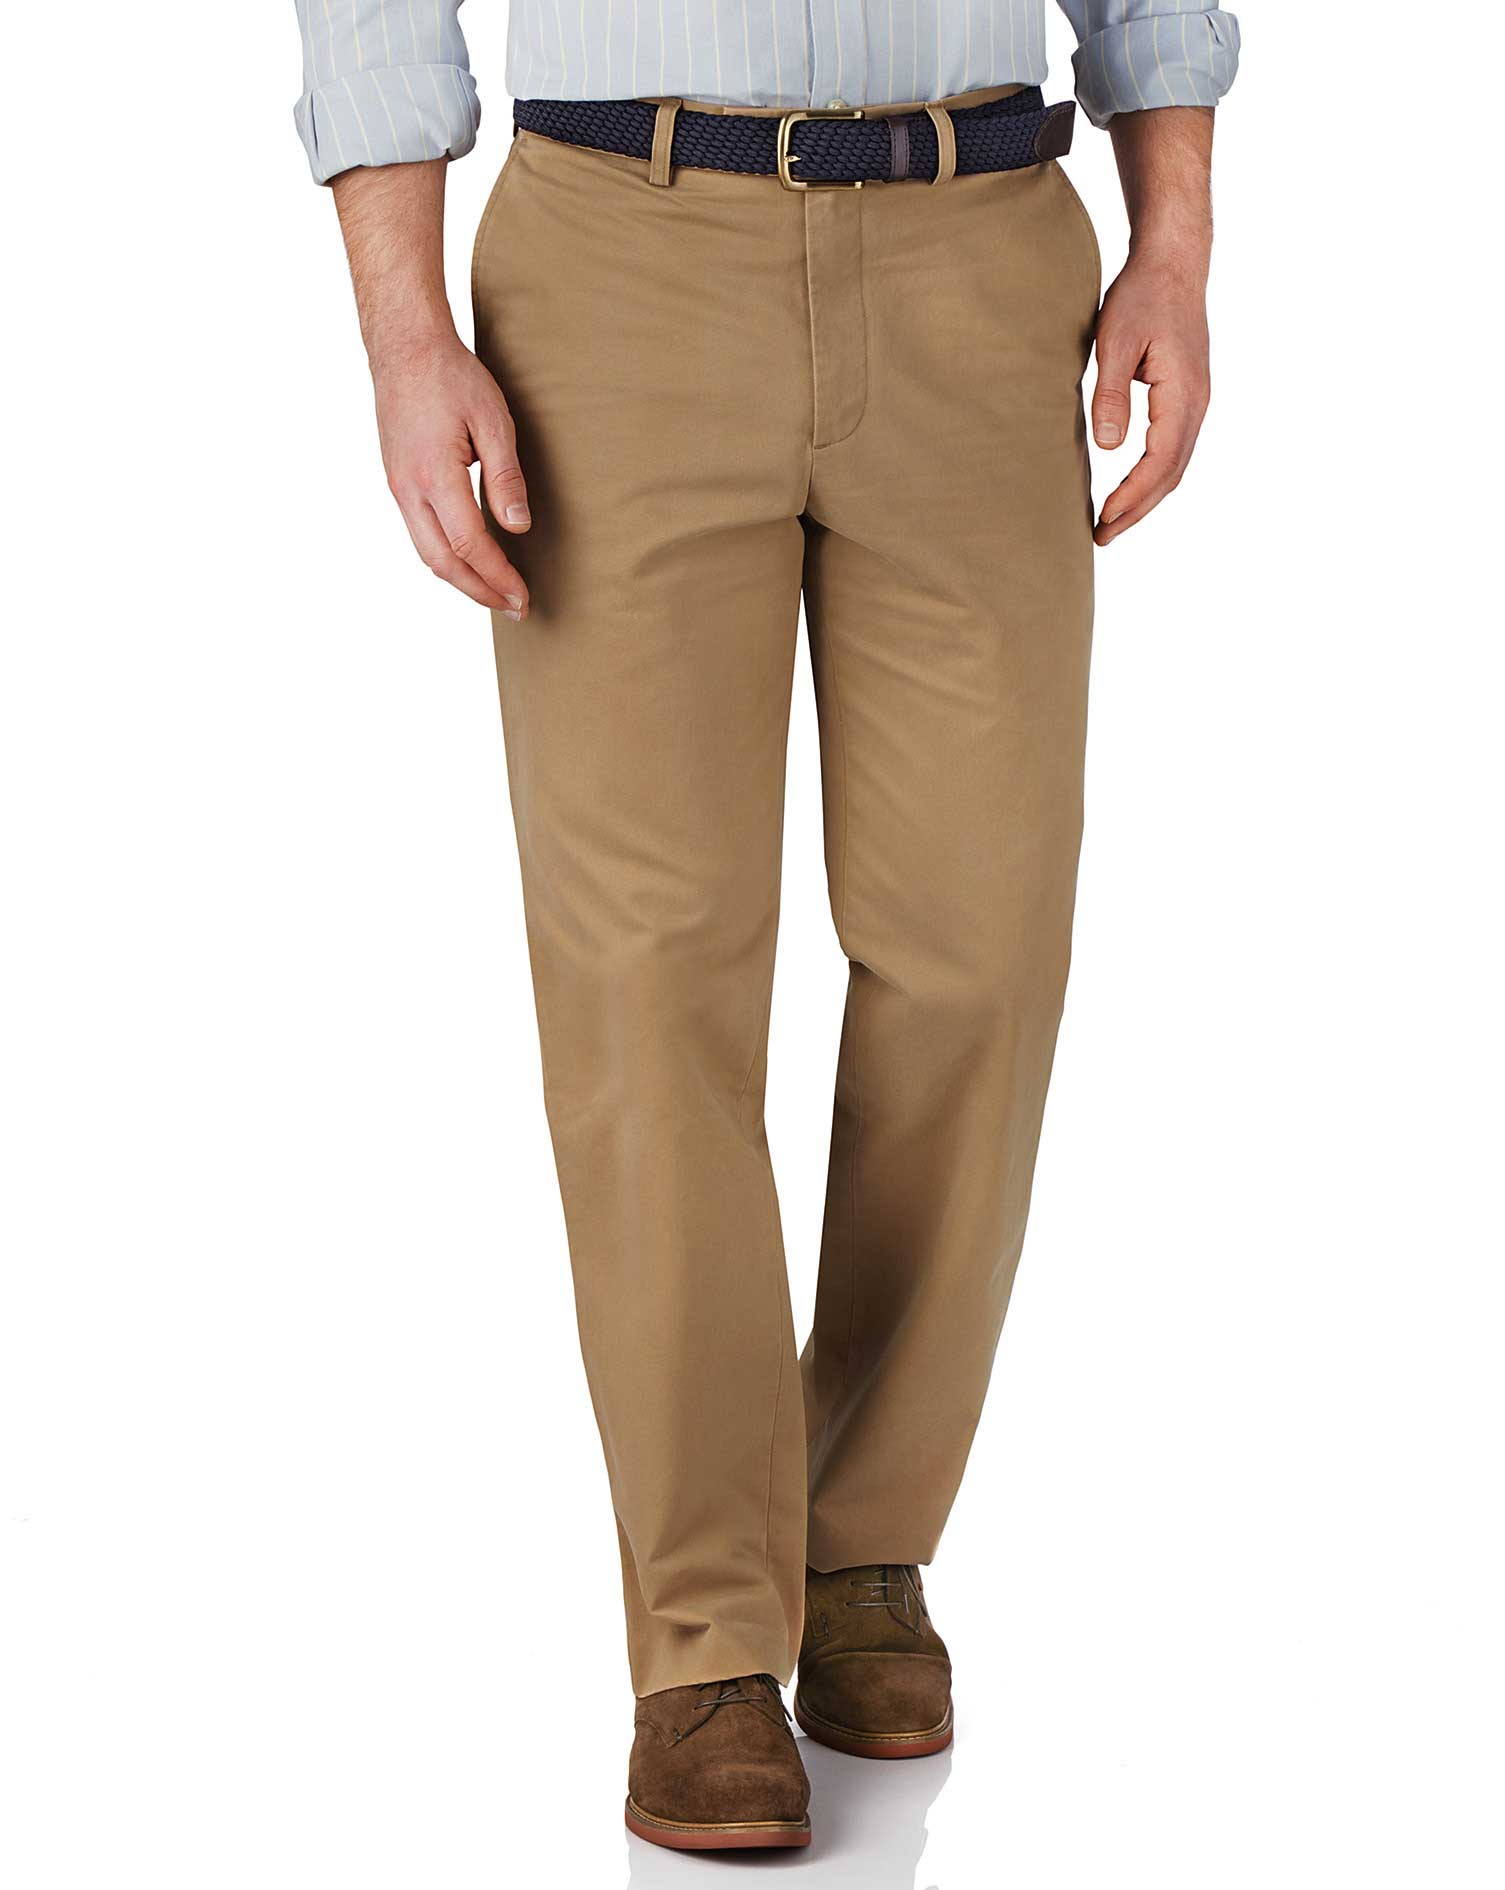 Tan Classic Fit Flat Front Washed Cotton Chino Trousers Size W36 L29 by Charles Tyrwhitt